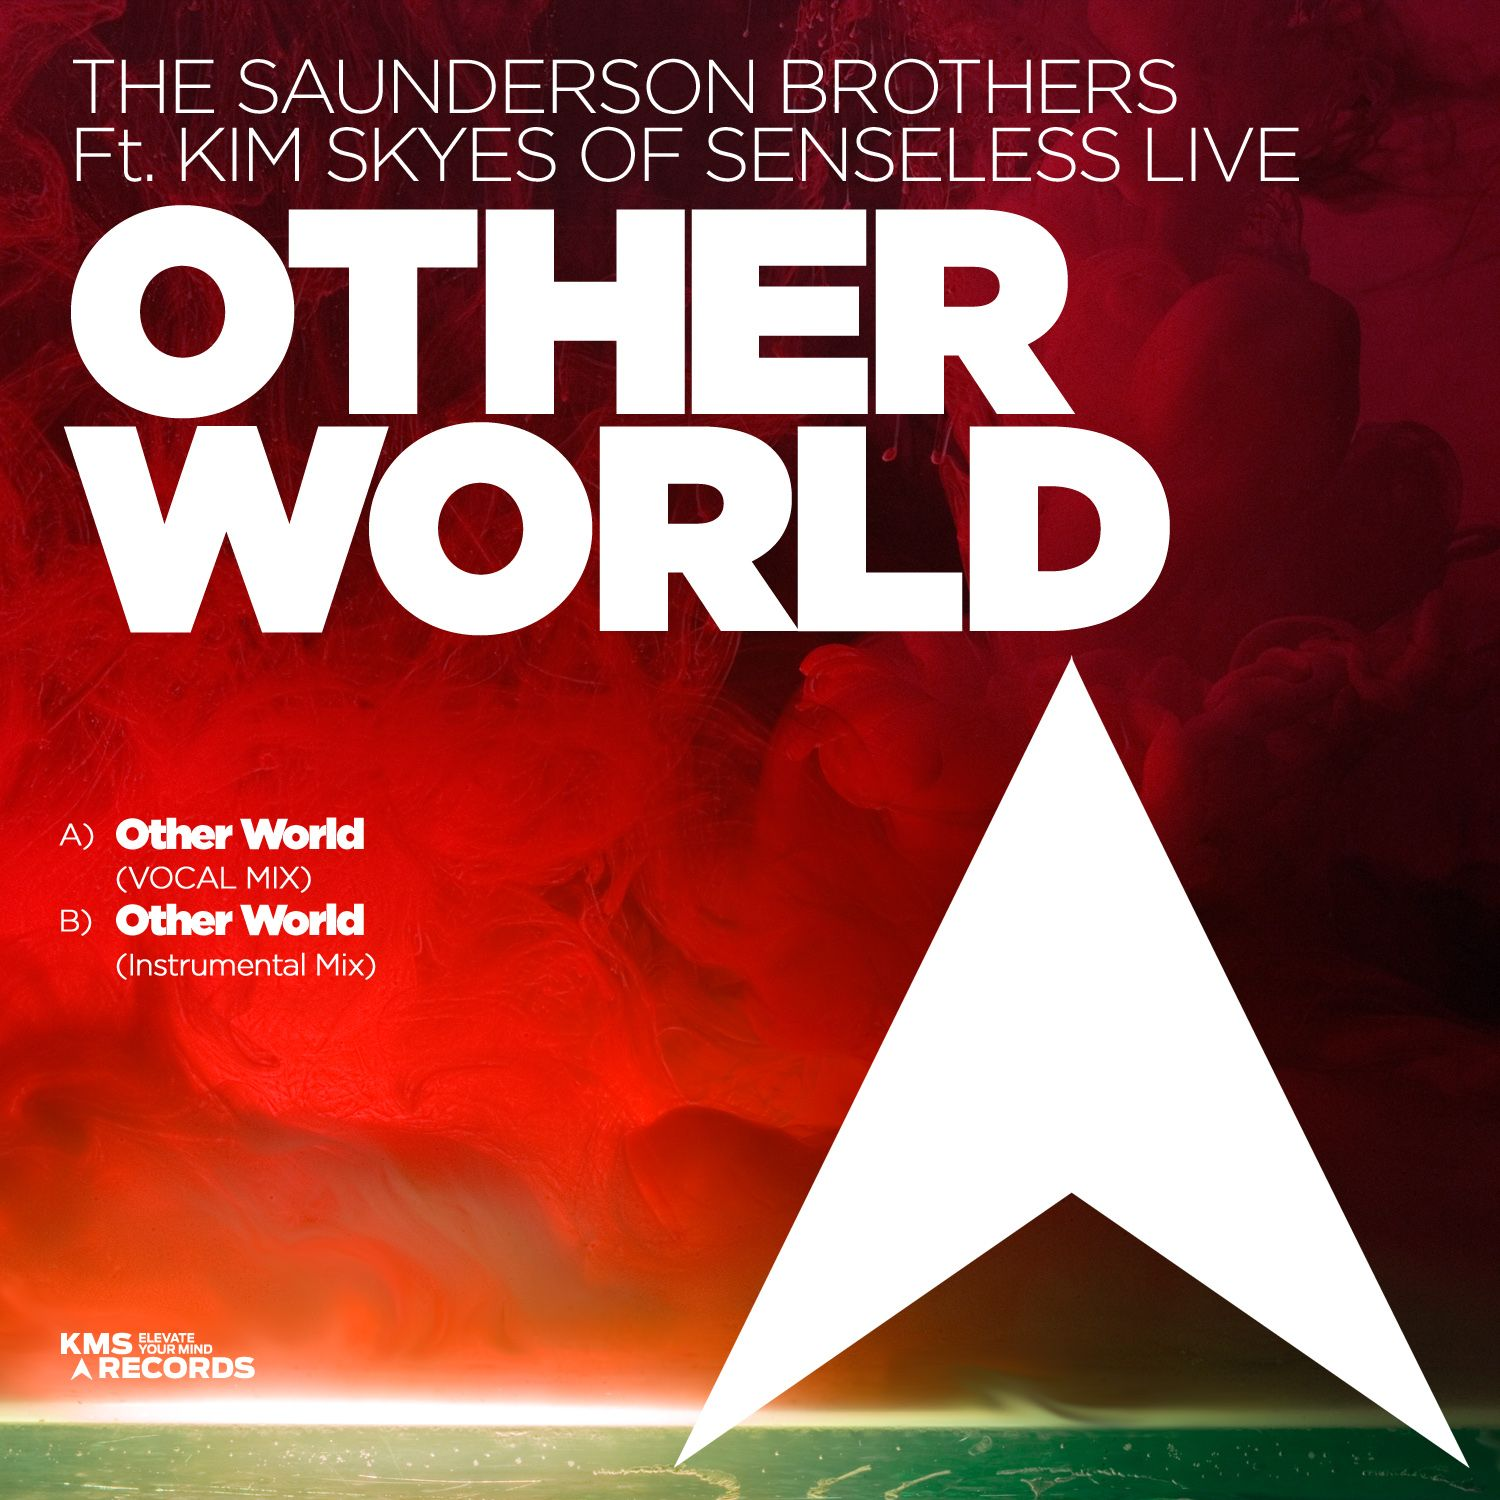 the_saunderson_brothers_ft._kim_sykes_of_senseless_live_-_other_world.jpg